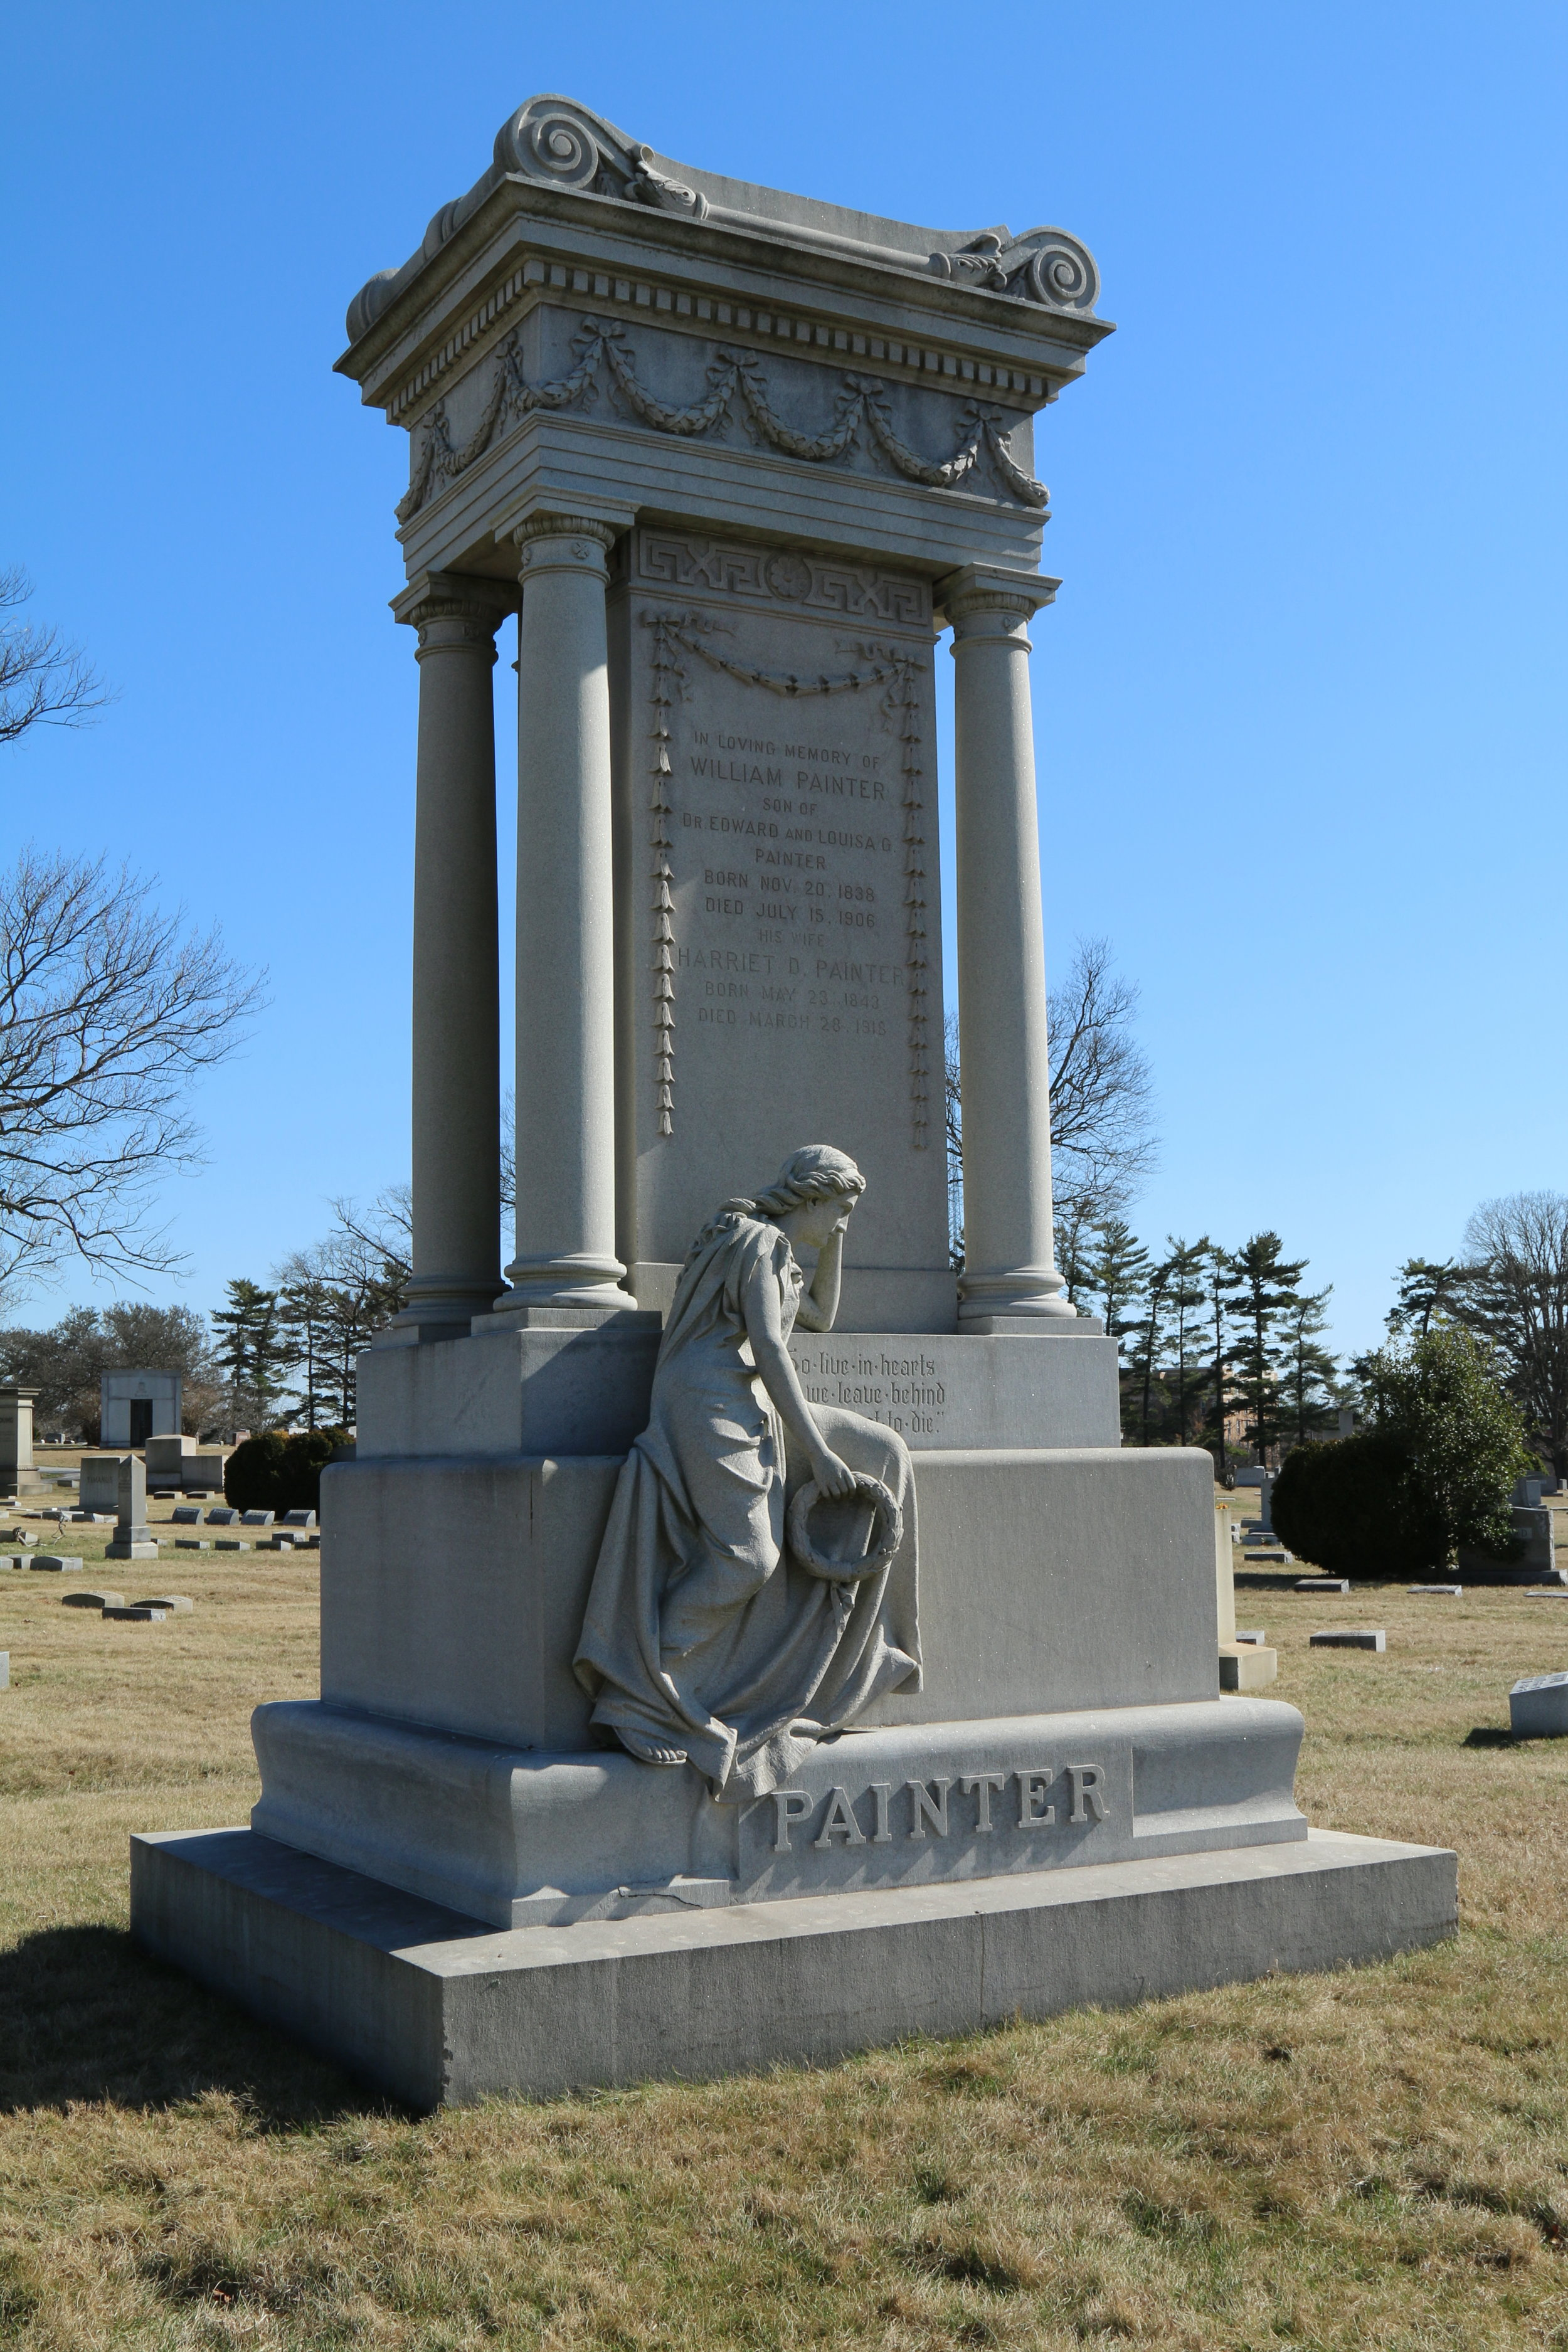 William Painter, who invented the bottle cap that made Baltimore's Crown Cork and Seal an international company, is buried in Druid Ridge Cemetery in Pikesville. Photo by Kathi Santora